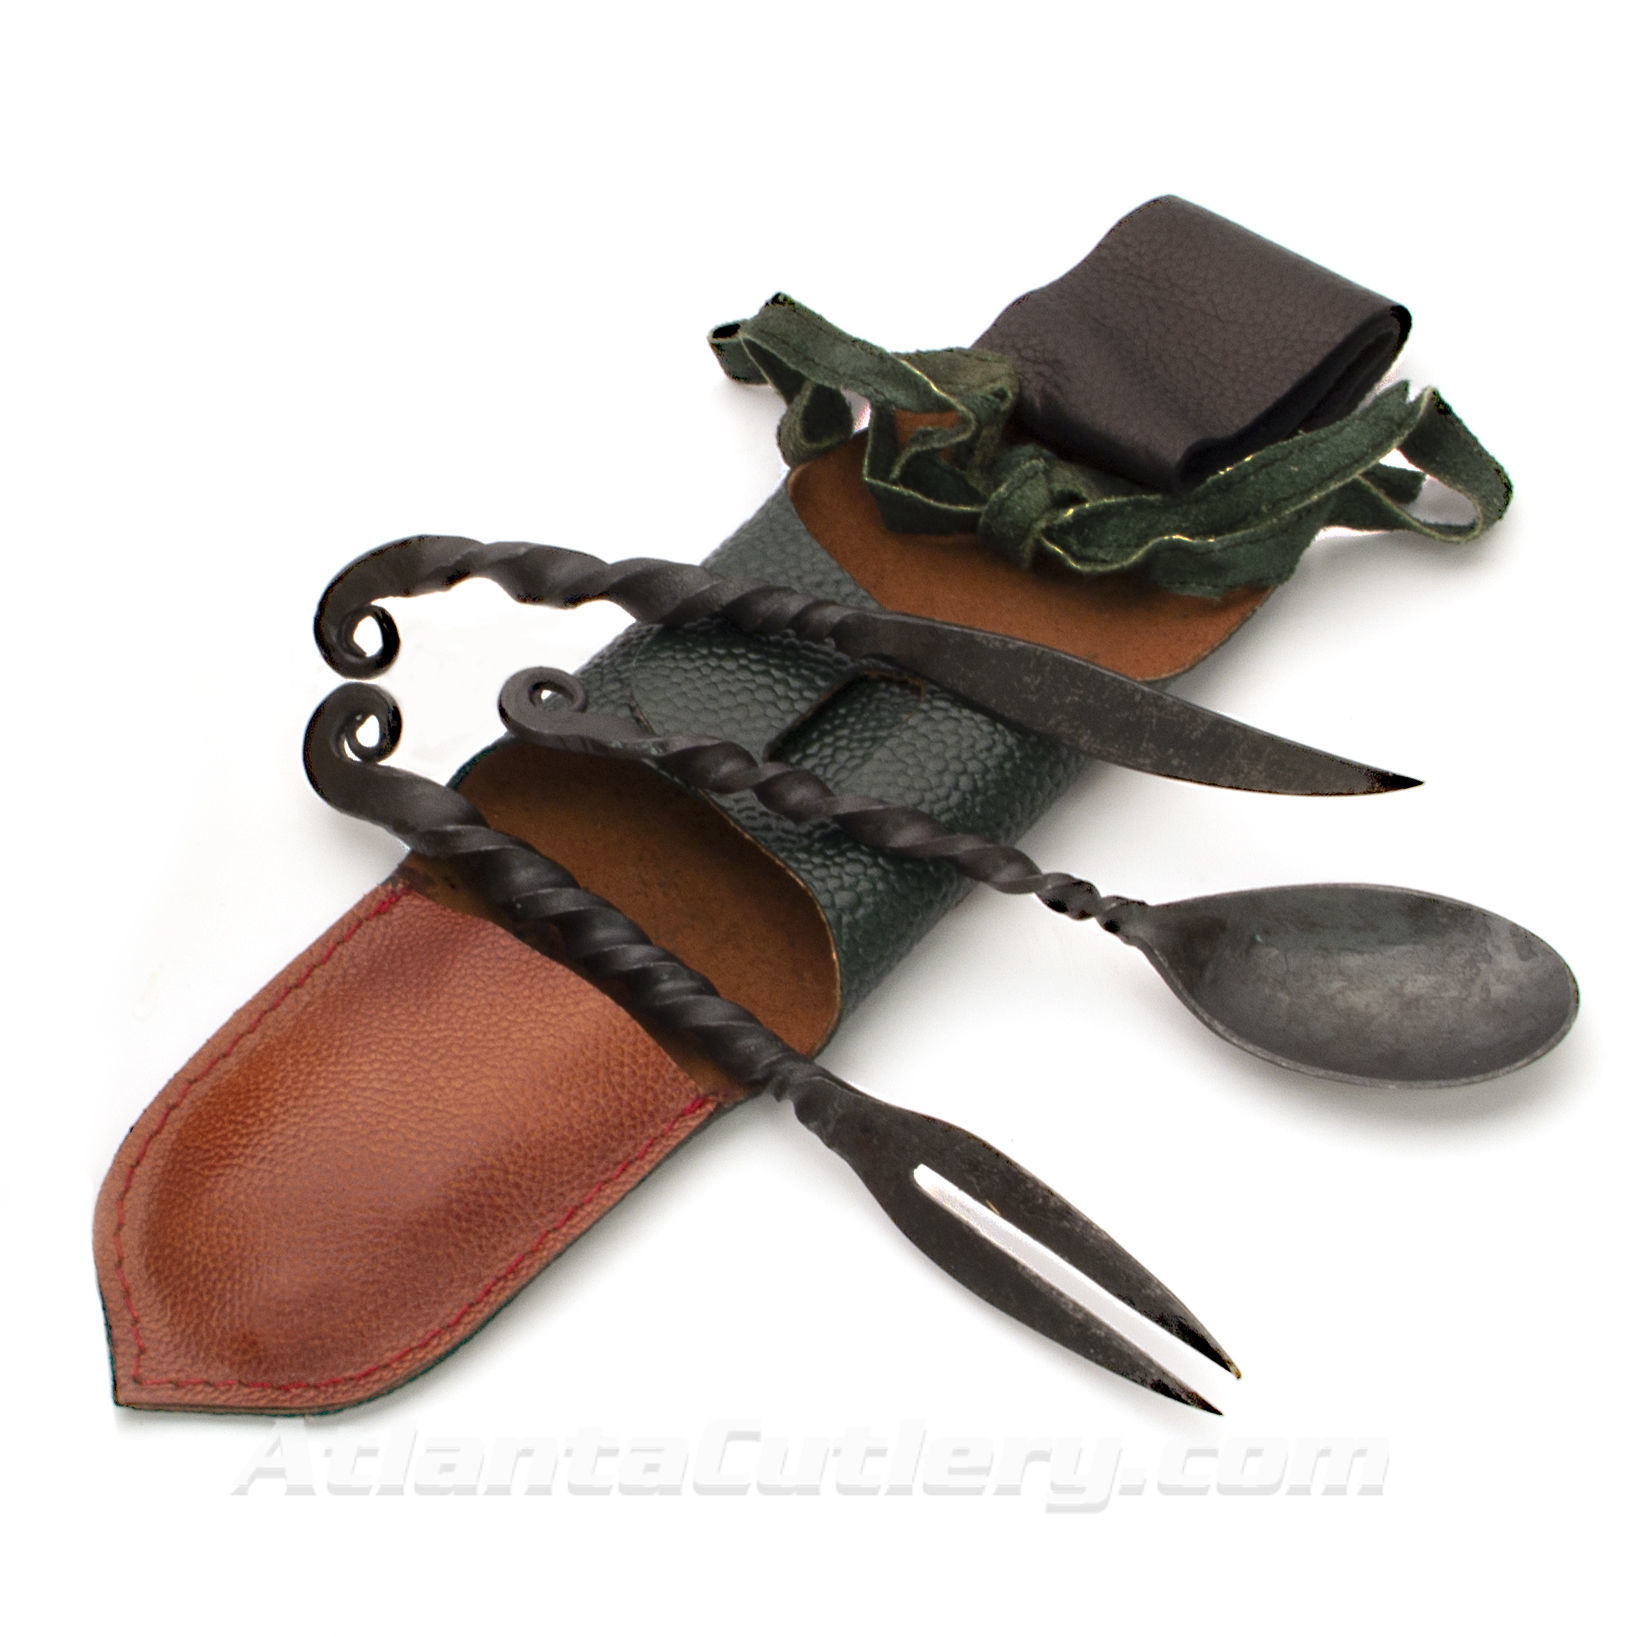 Forged Iron Feasting Utensils With Pouch